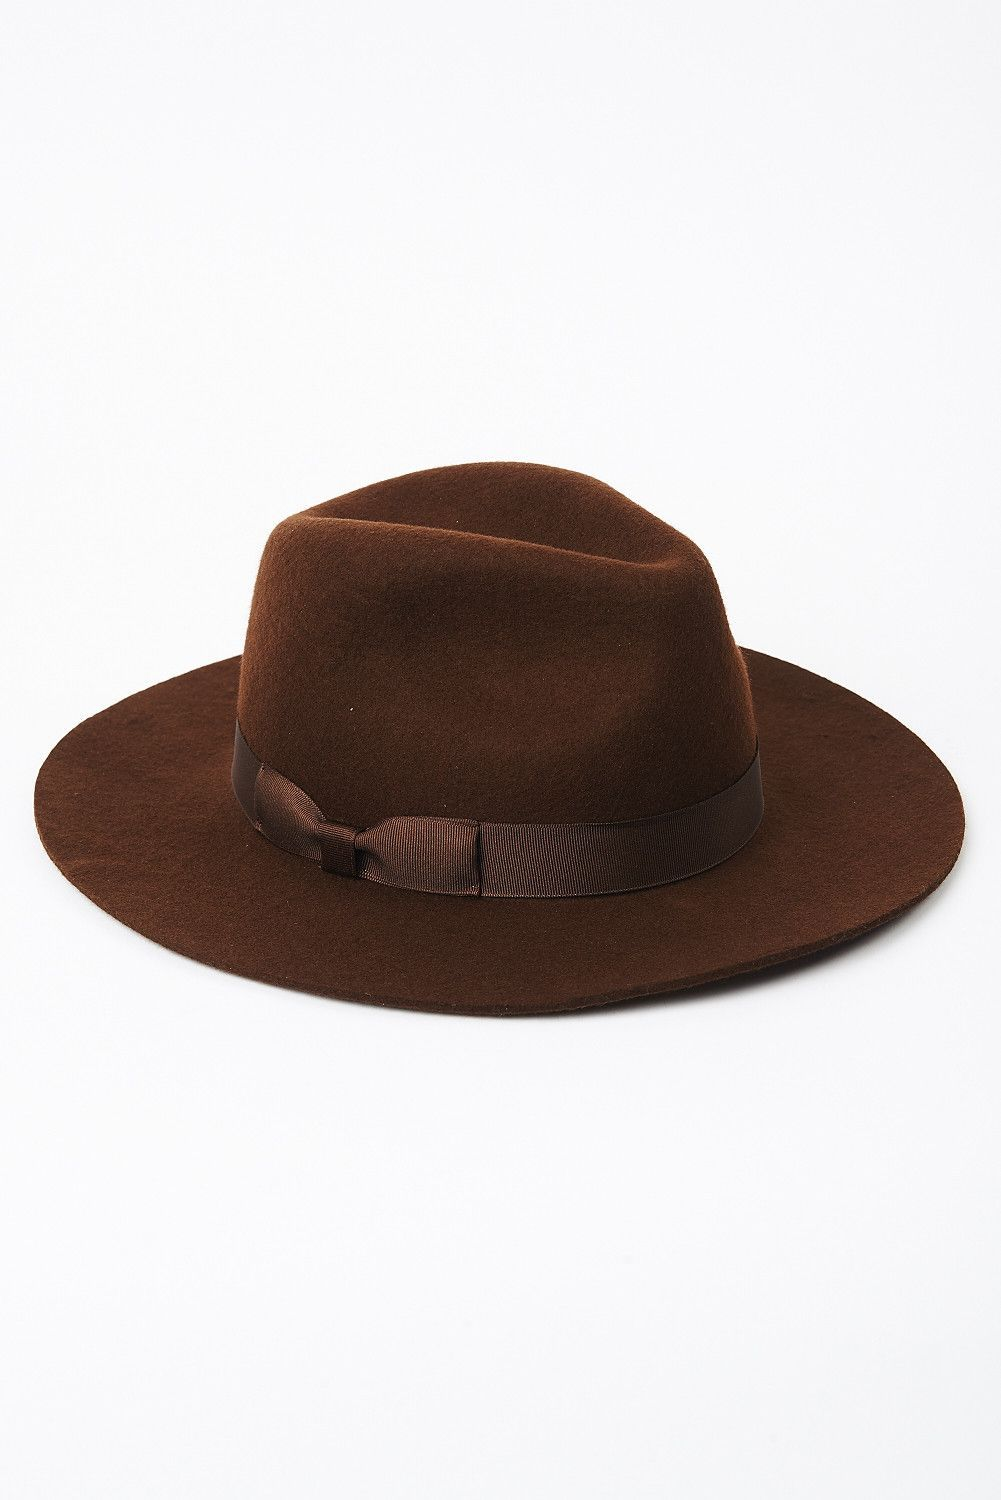 829d0aaac Chocolate brown structured soft wool fedora by Lack of Color ...